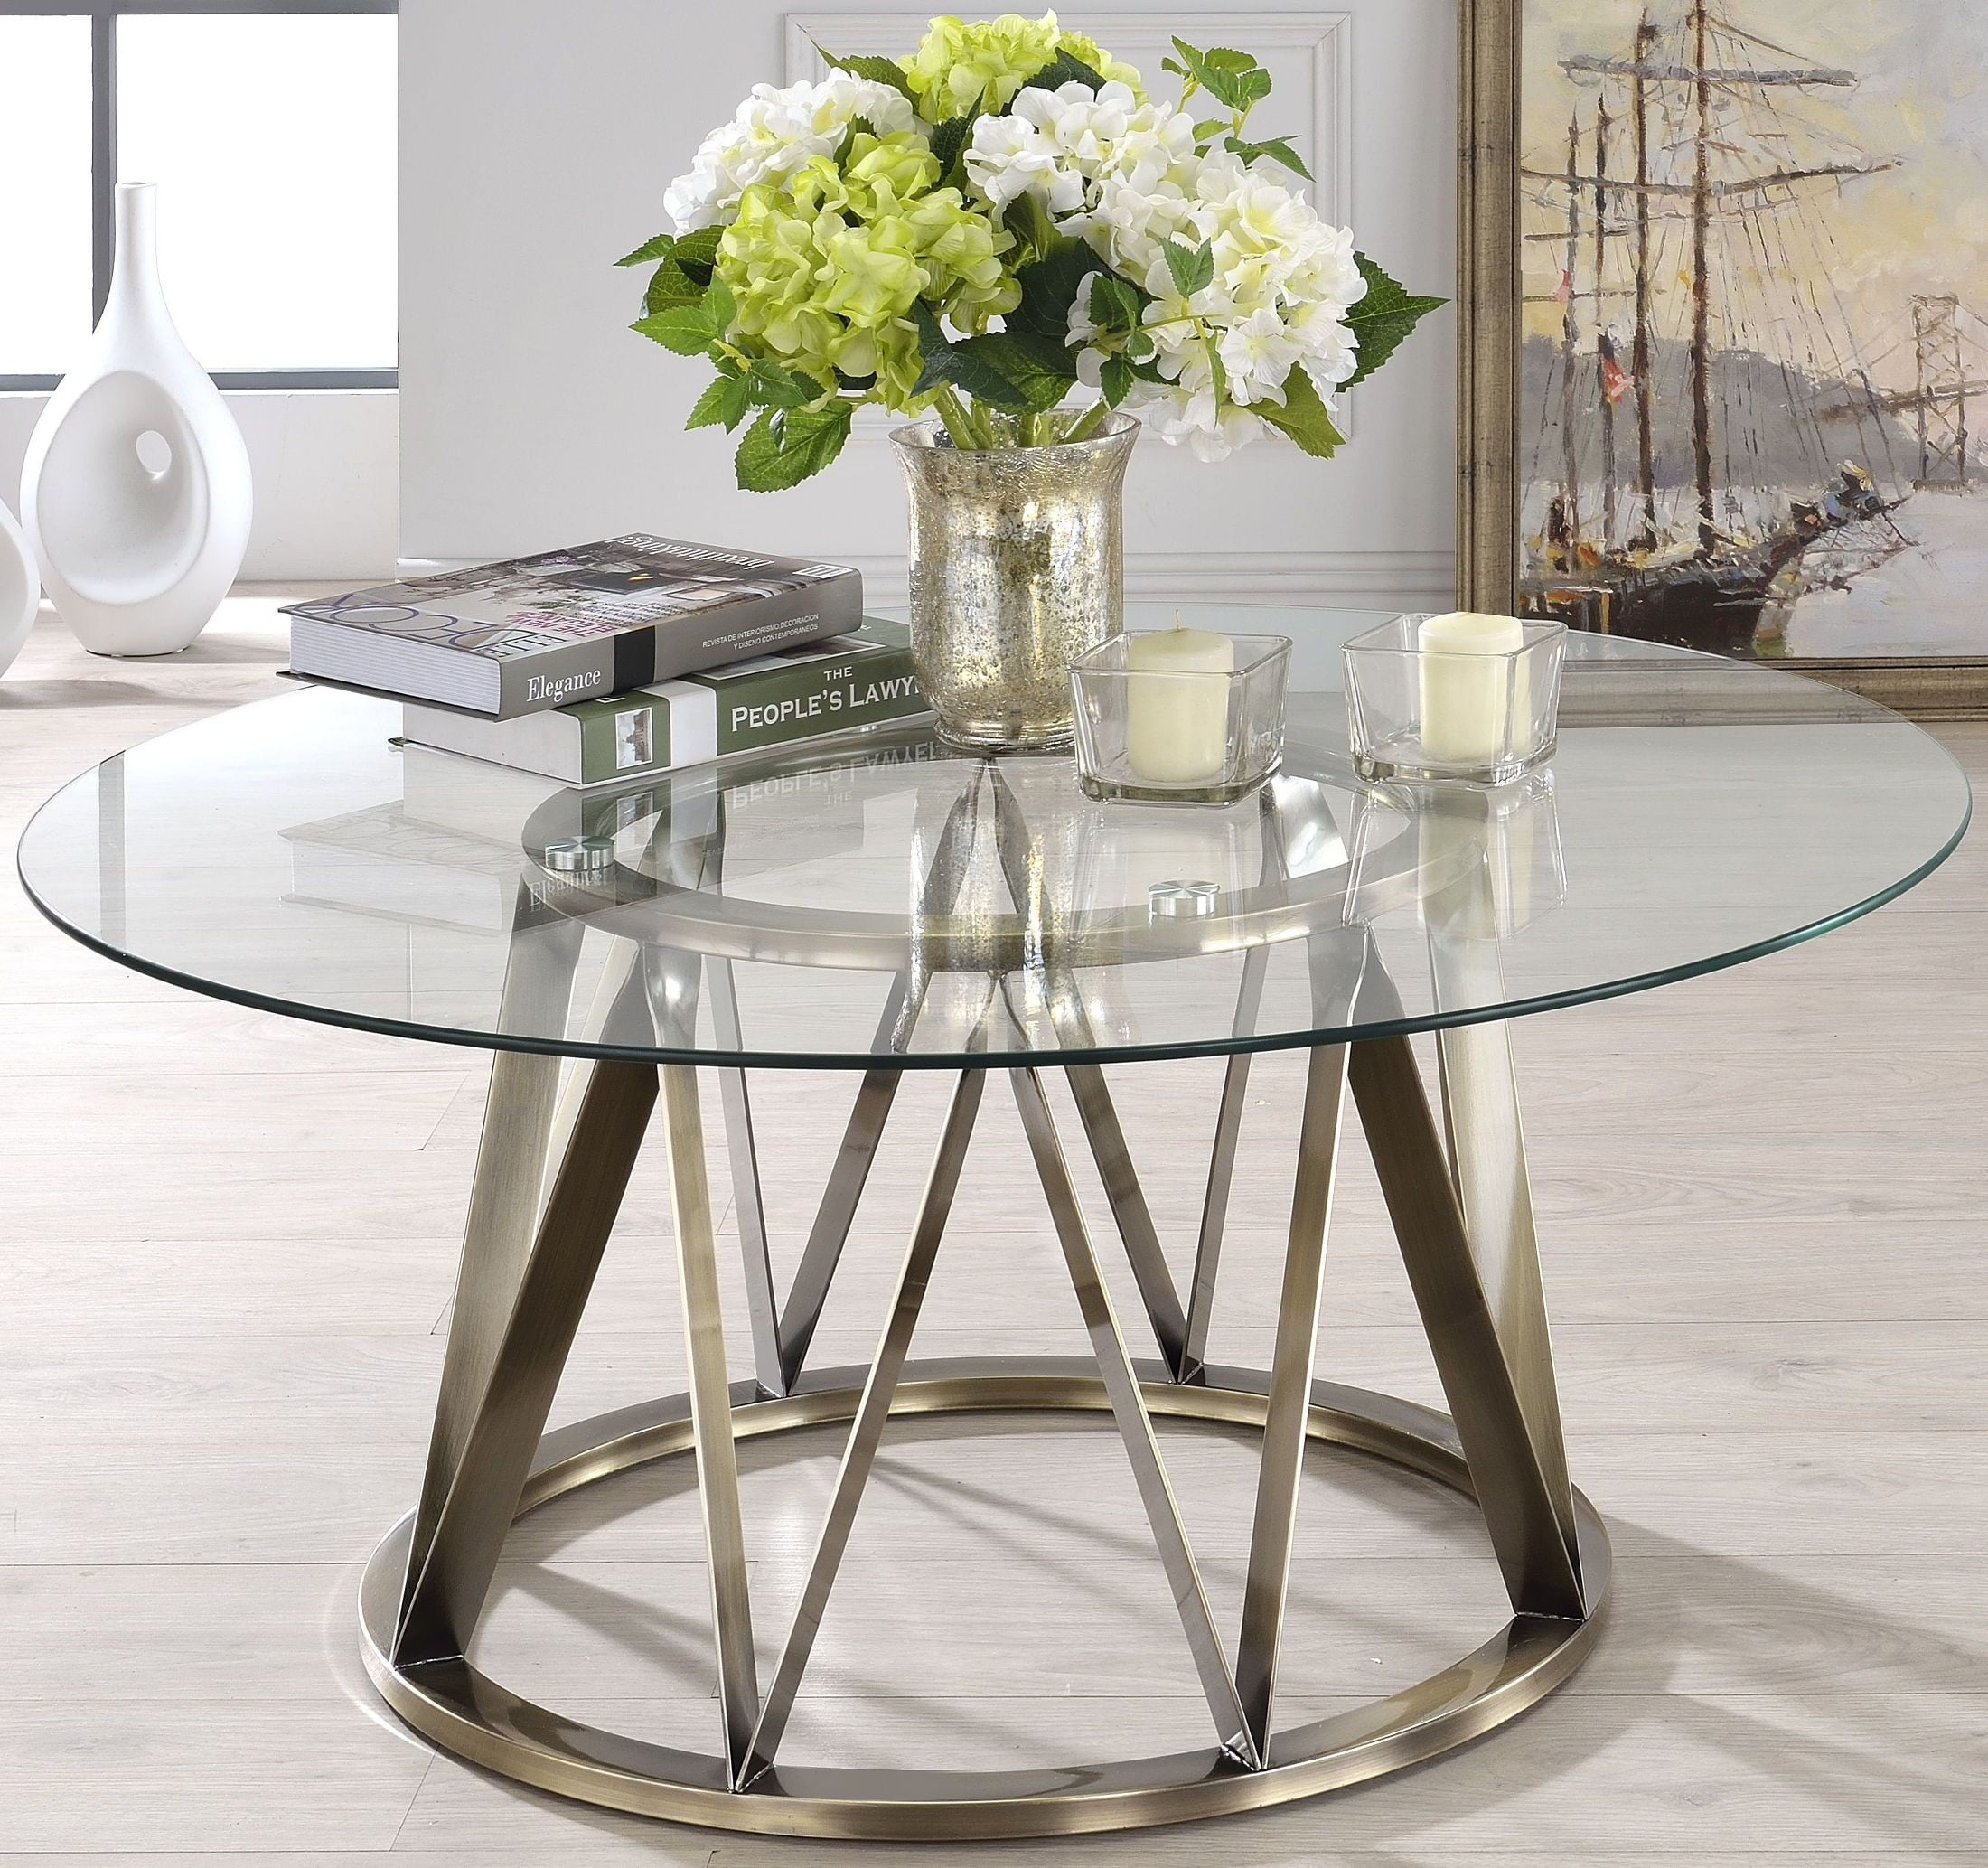 Perjan Antique Brass And Clear Glass Coffee Table From